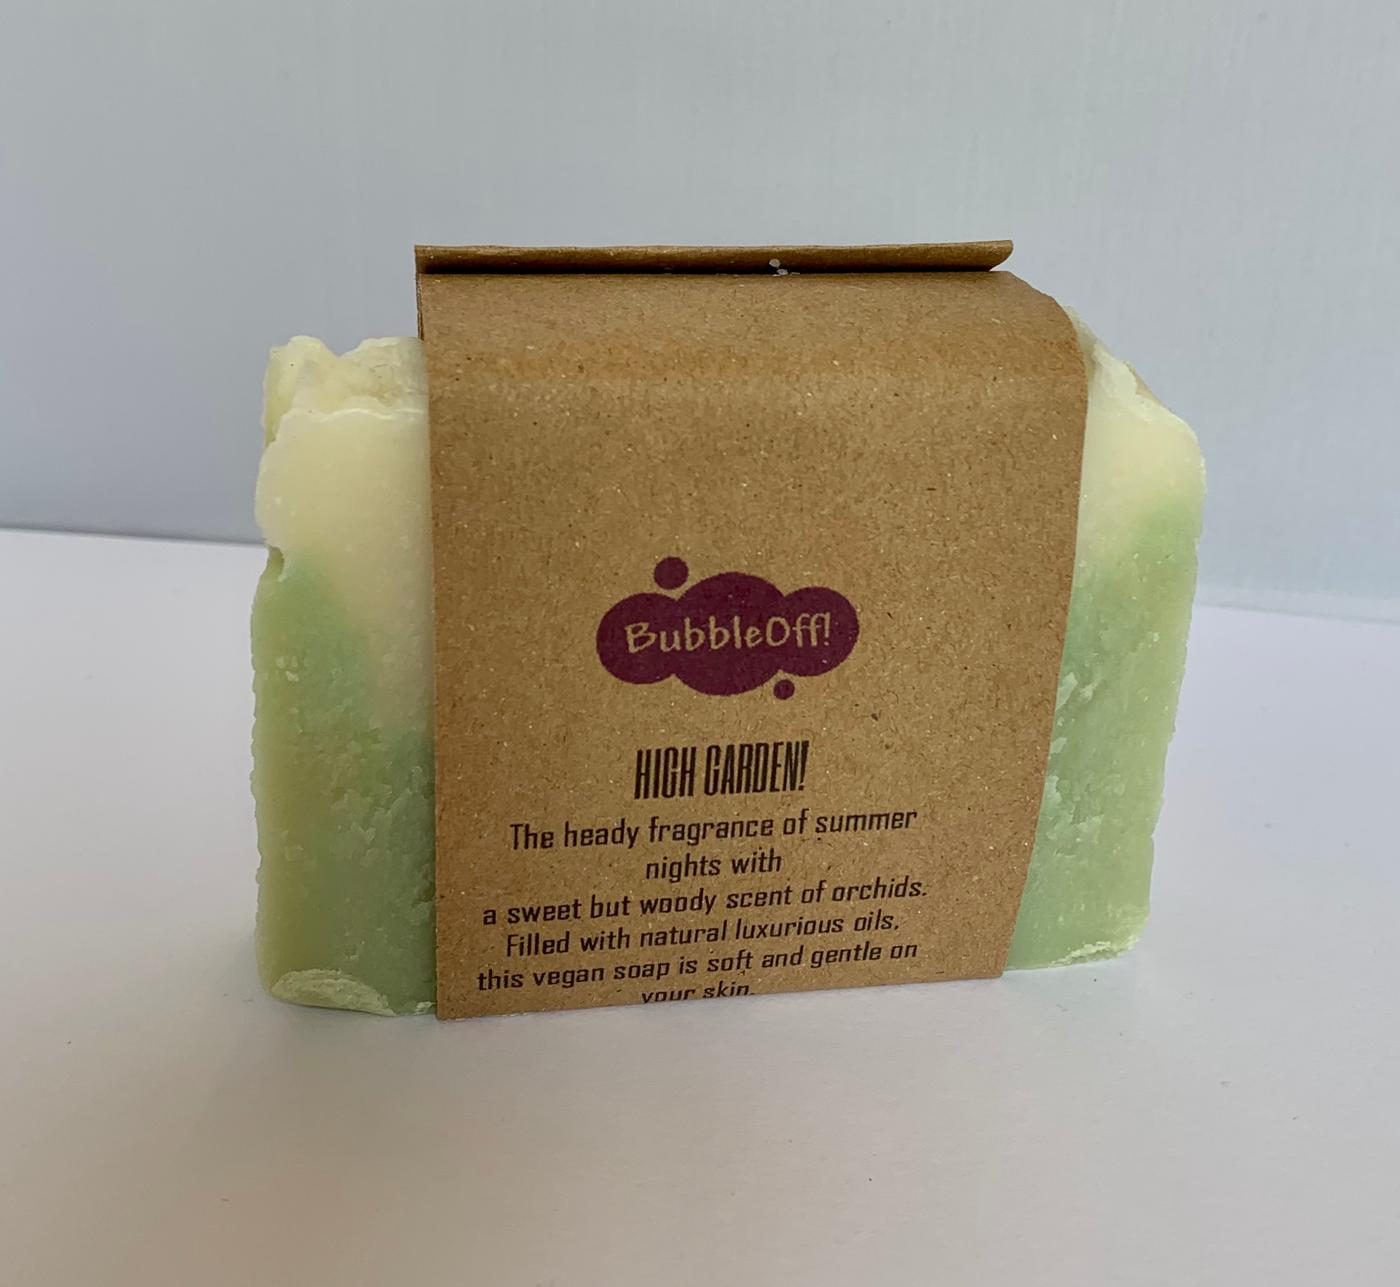 BubbleOff- Vegan Cold-Pressed Soap